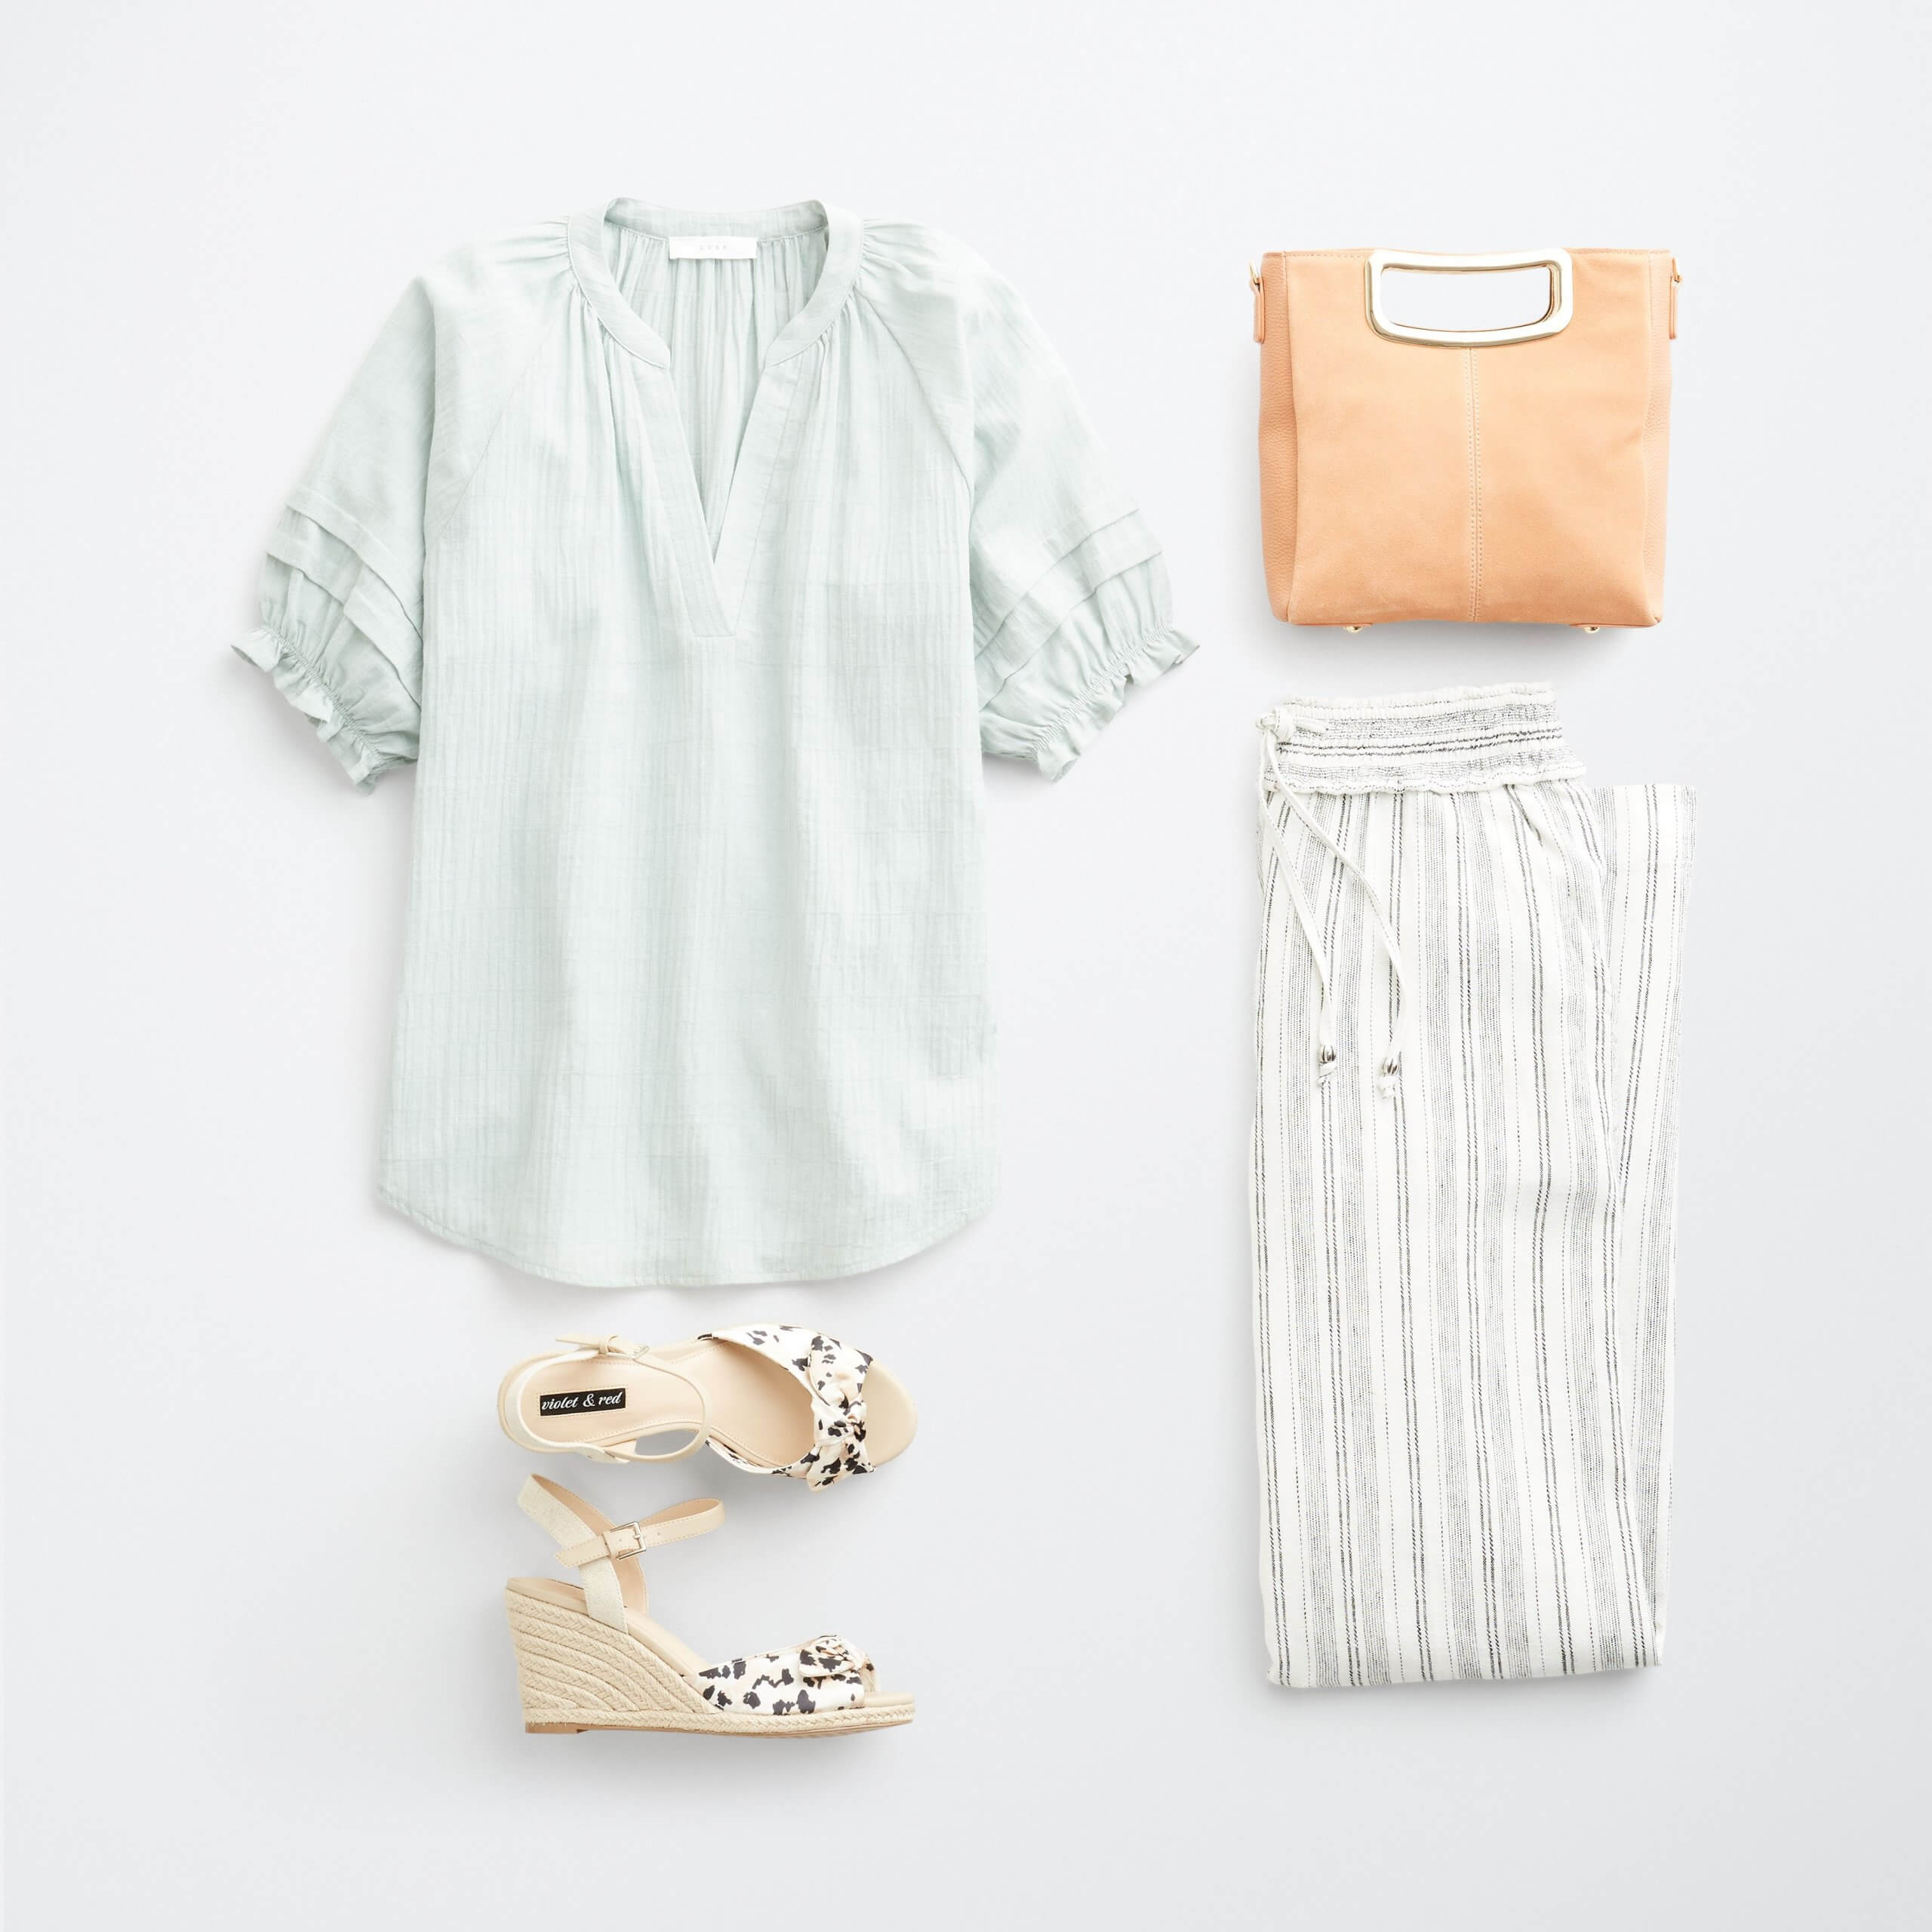 Stitch Fix Women's outfit laydown featuring mint green ruffle sleeve top, white striped wide-leg pants, tan animal print wedges, brown bag.